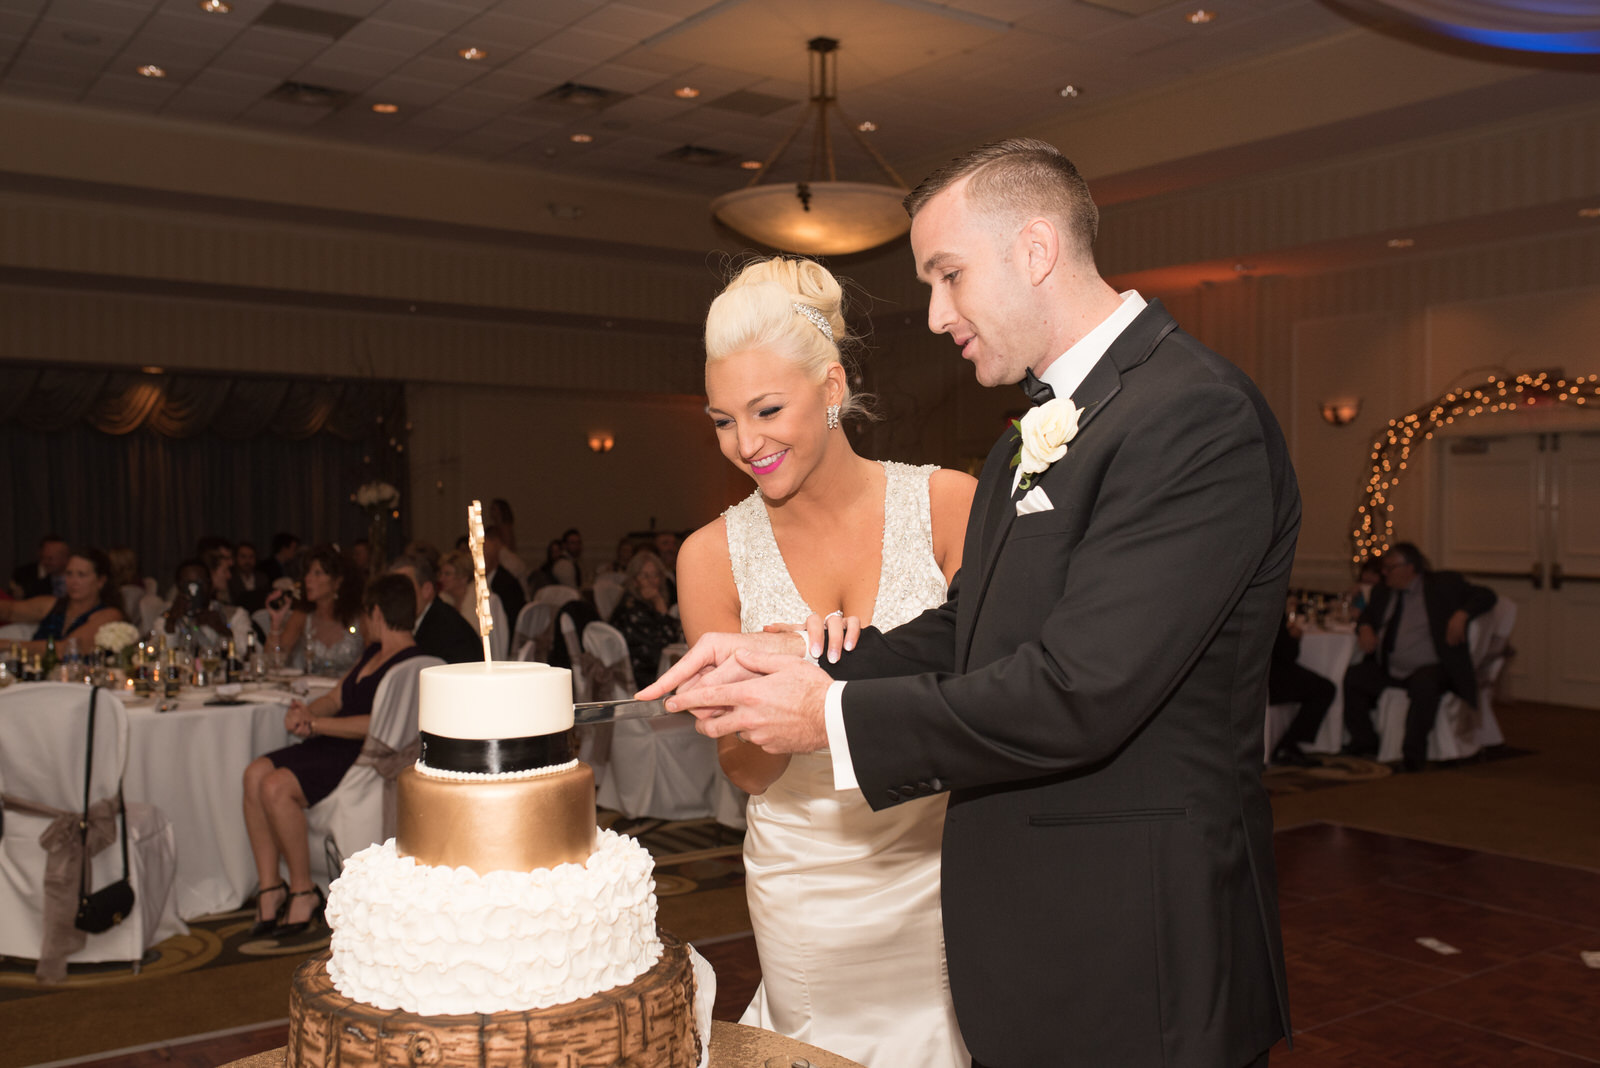 hilton_garden_inn_southpointe_pittsburgh_weddings_91.jpg